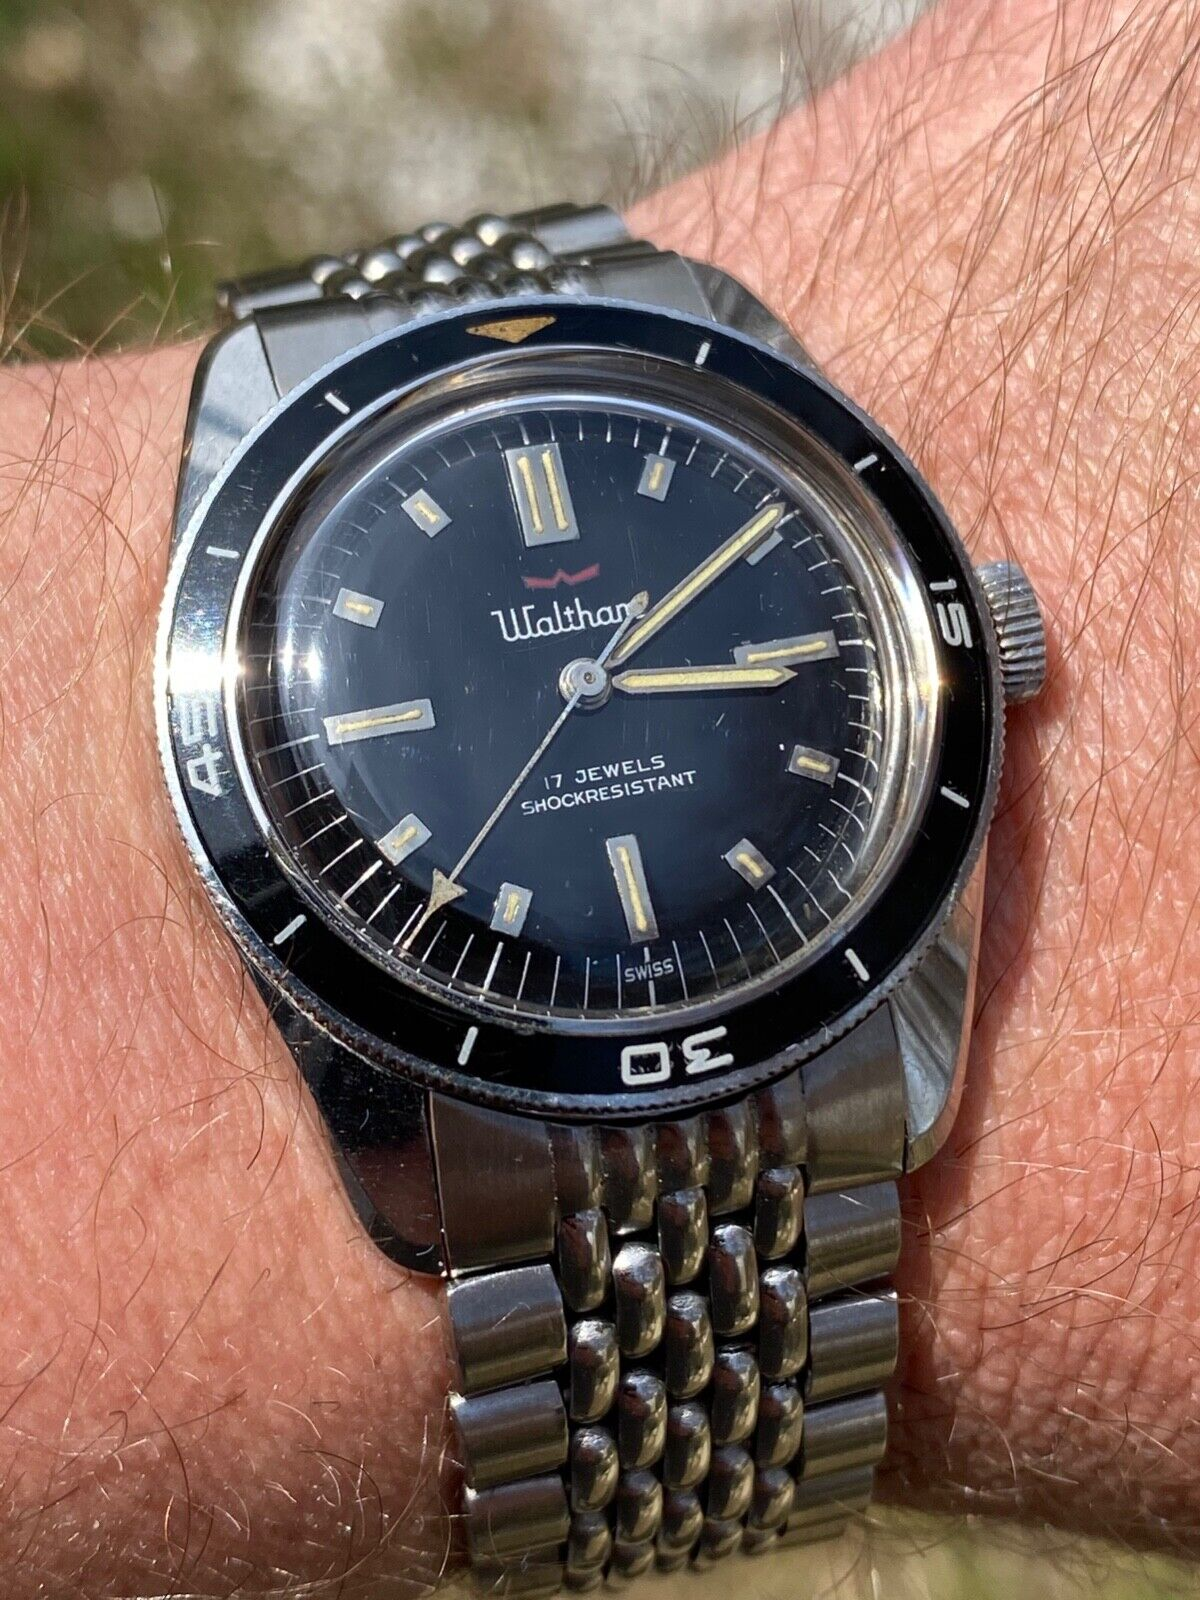 Vintage Waltham Blancpain Bathyscaphe Diver Watch Paul Newman Bakelite Bezel  - watch picture 1